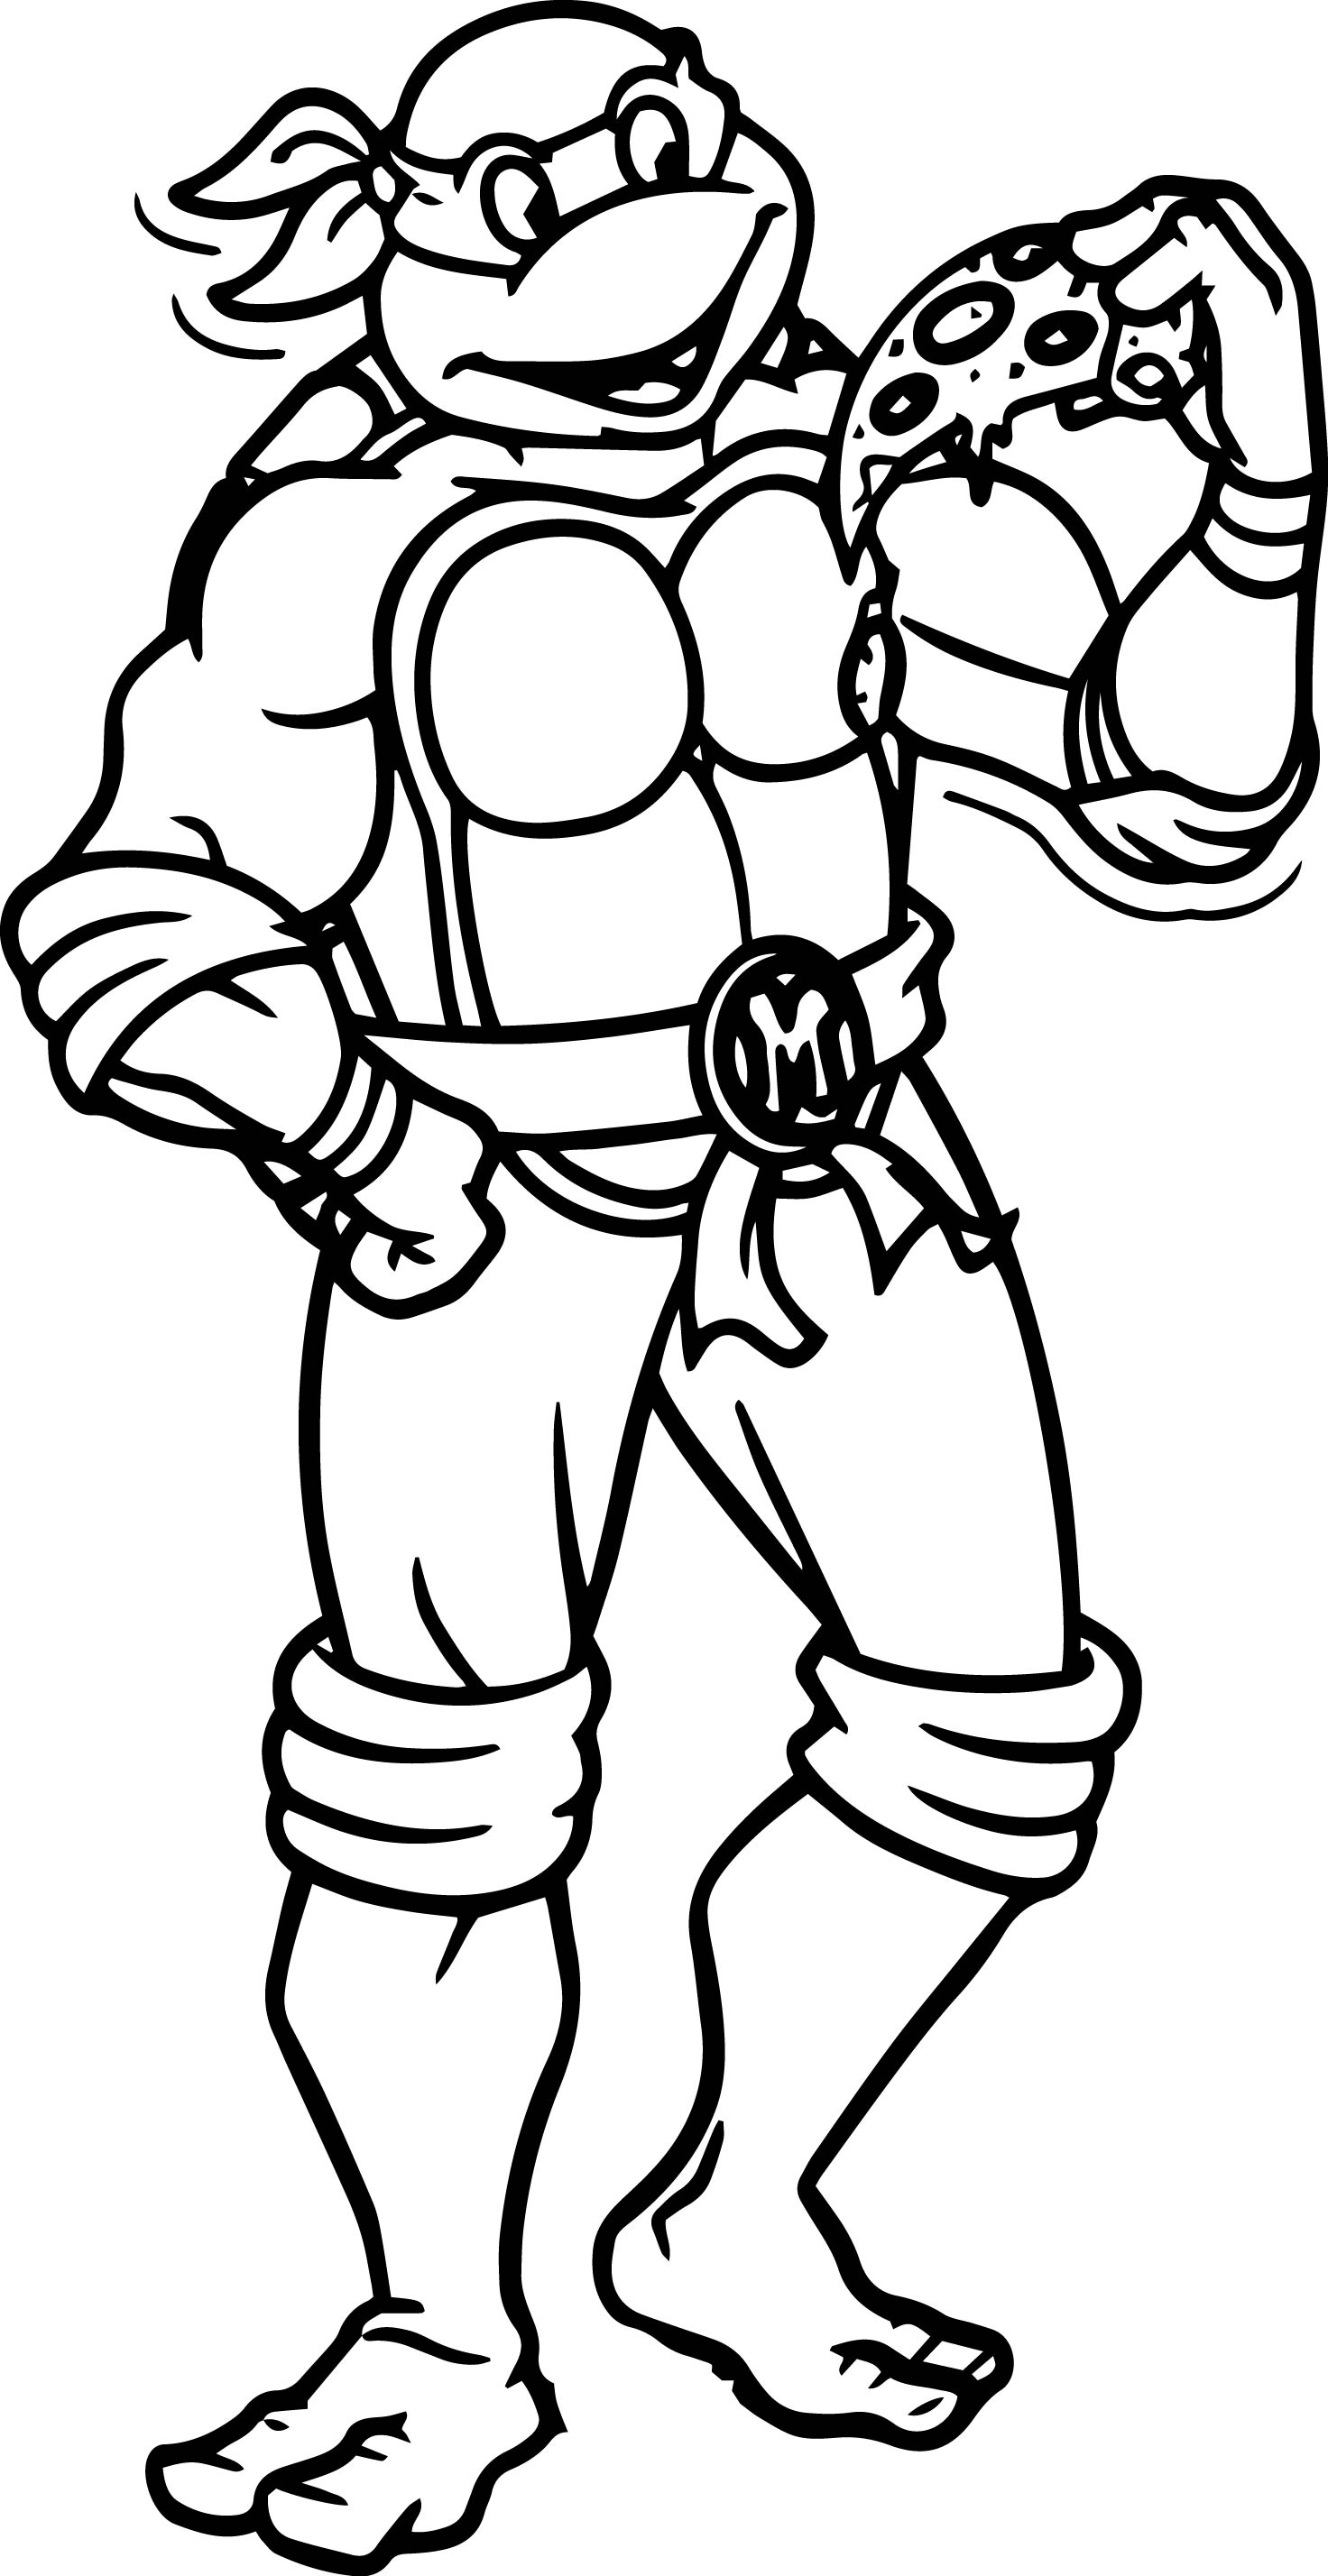 Ninja Turtles Movie Coloring Pages Collection 6q - Free For Children